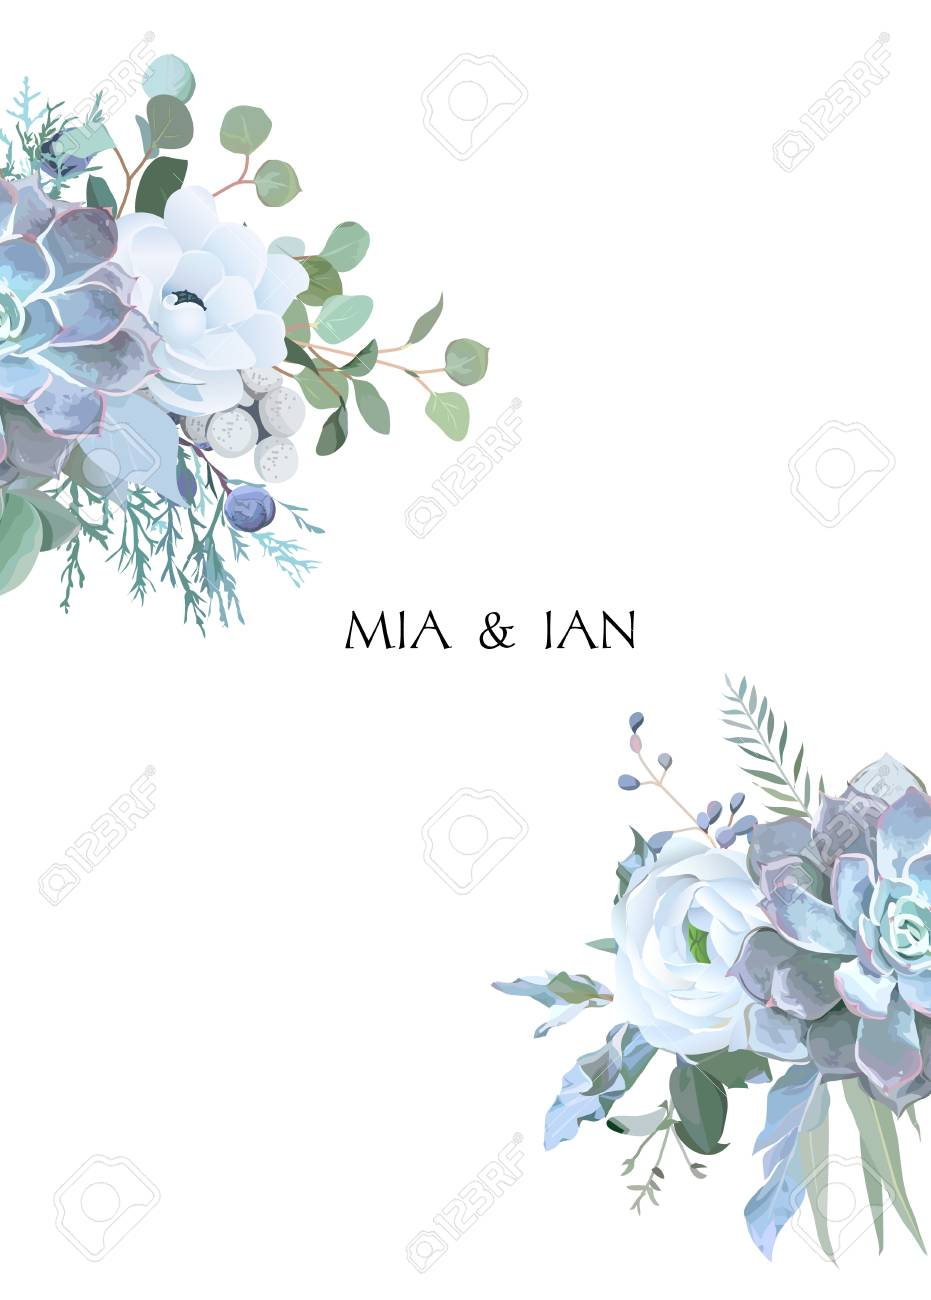 Dusty Blue And White Flowers Ranunculus Anemone Eucalyptus Royalty Free Cliparts Vectors And Stock Illustration Image 127273363